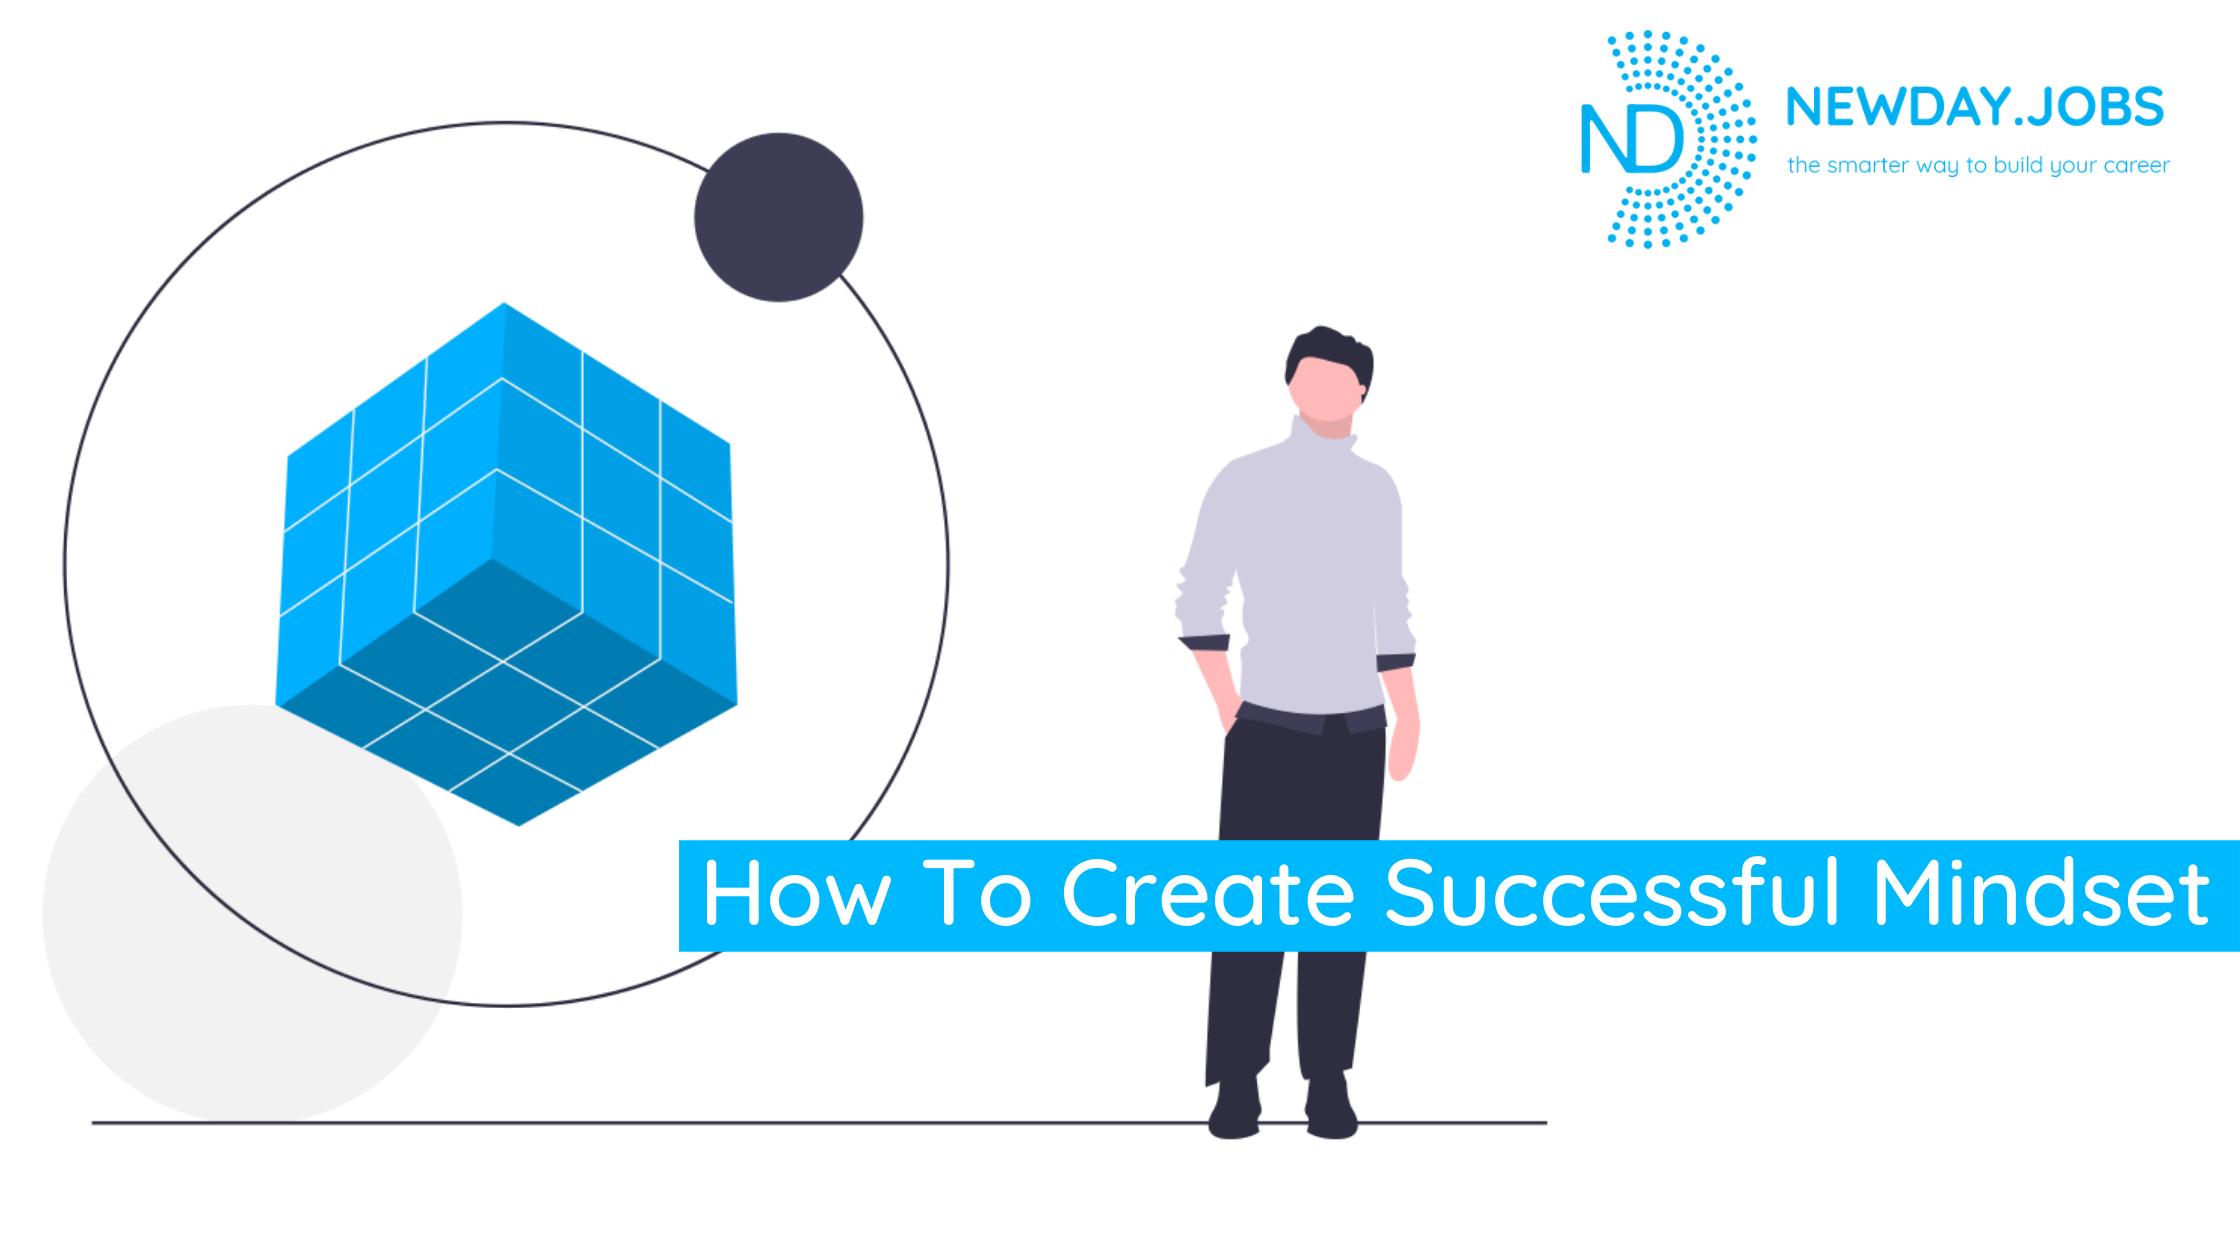 How To Create Successful Mindset | Blog from New Day Jobs